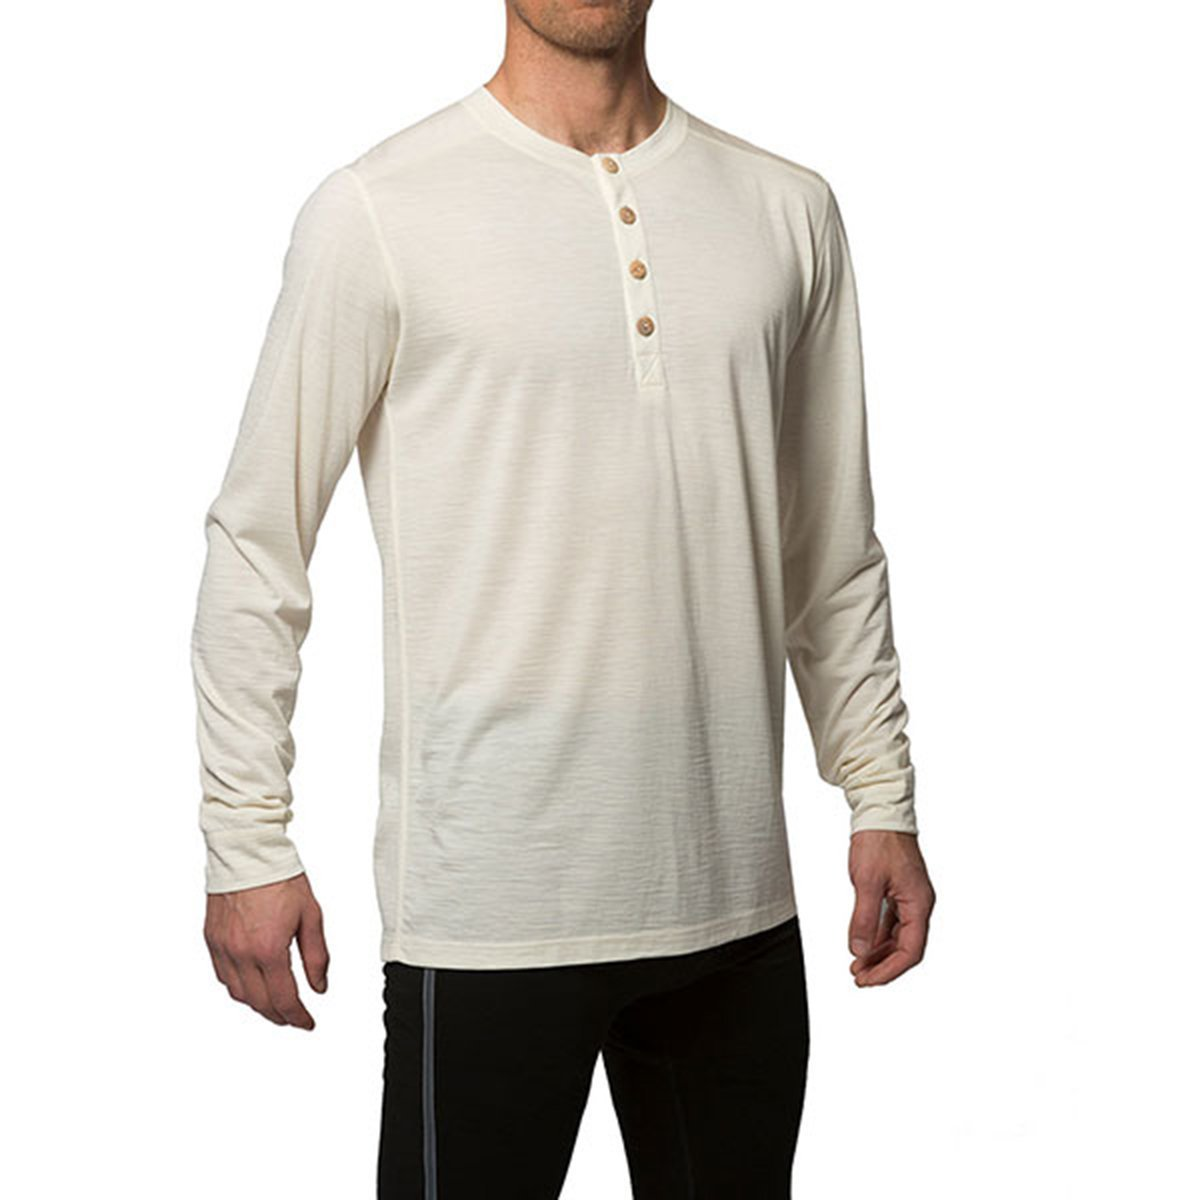 Northern Playground - Organic Wool & Silk Long Sleeve Henley - White | Men's